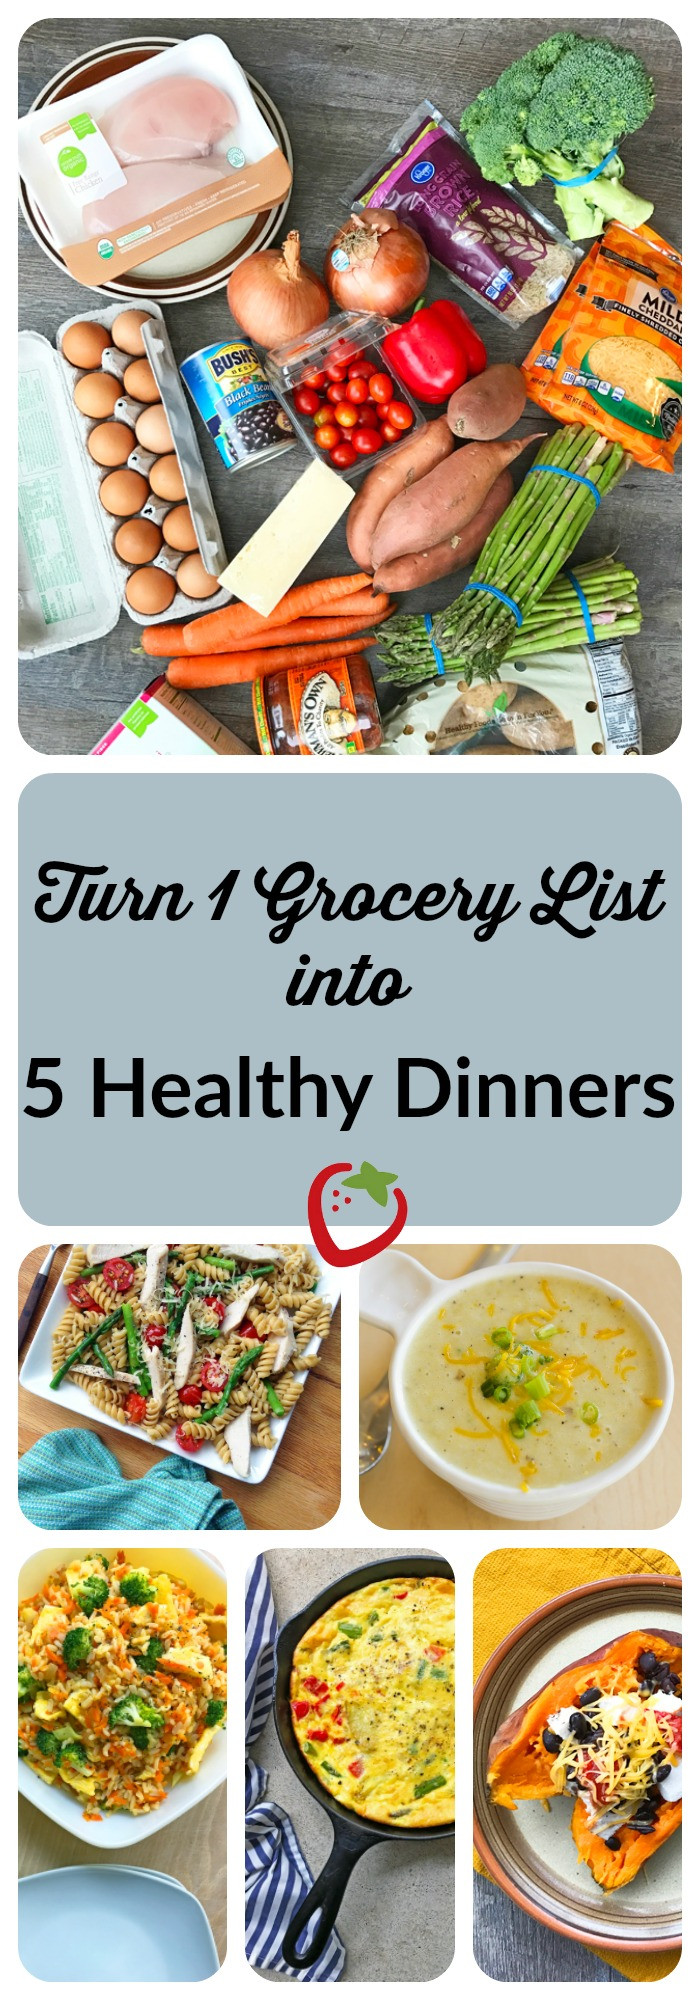 Healthy Dinner For One  Turn e Grocery List into Five Healthy Dinners